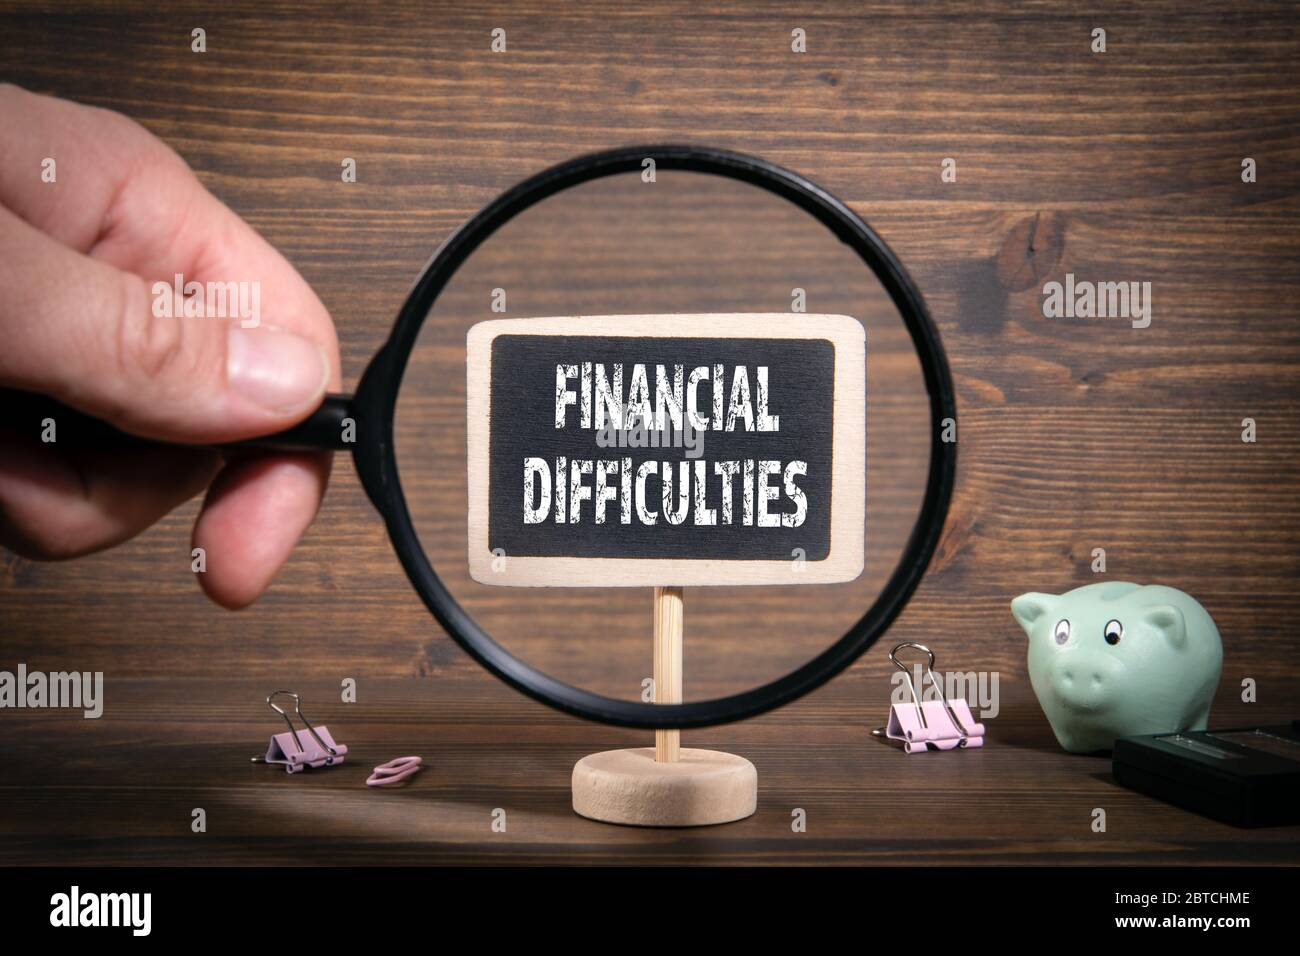 FINANCIAL DIFFICULTIES. Crisis, recession, support and credit holidays concept. Man's hand, holding magnifying glass Stock Photo